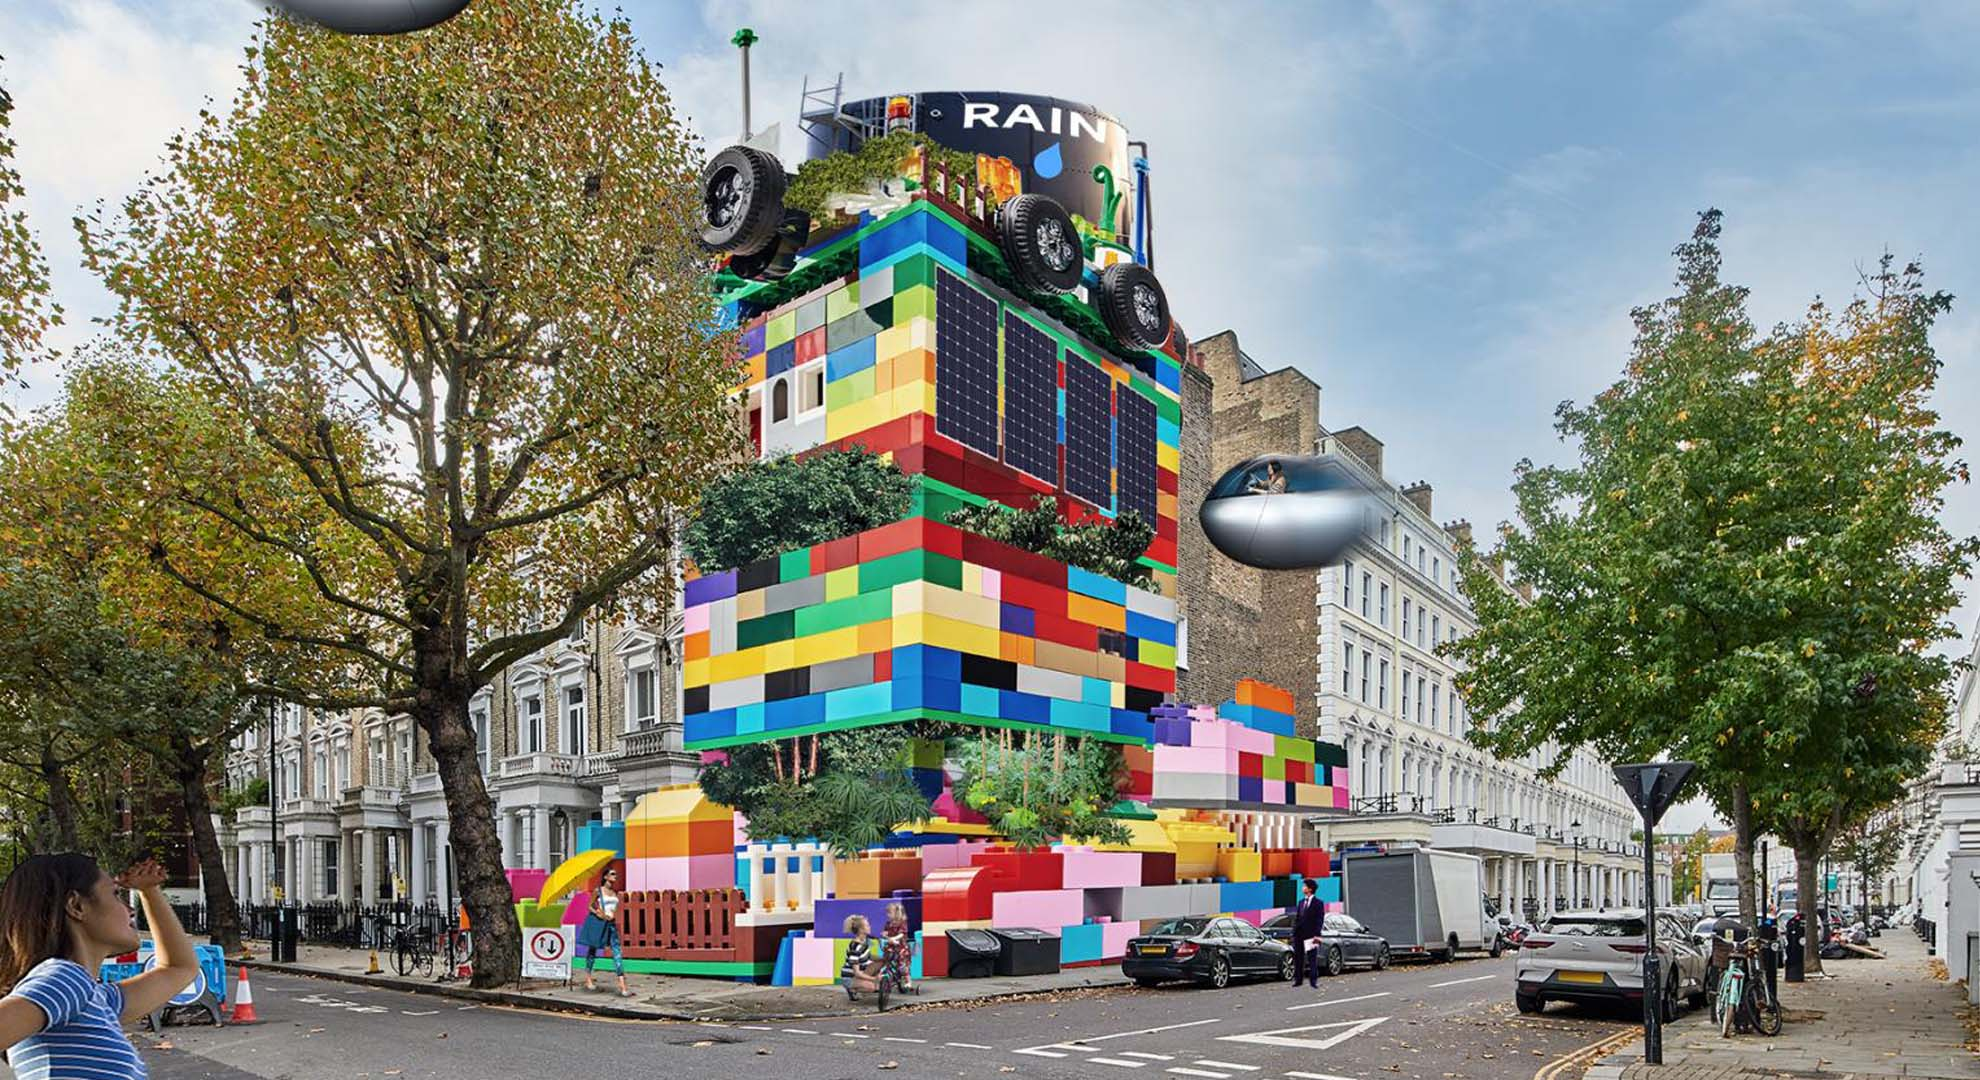 Project: Lego redesigns the world along with the children